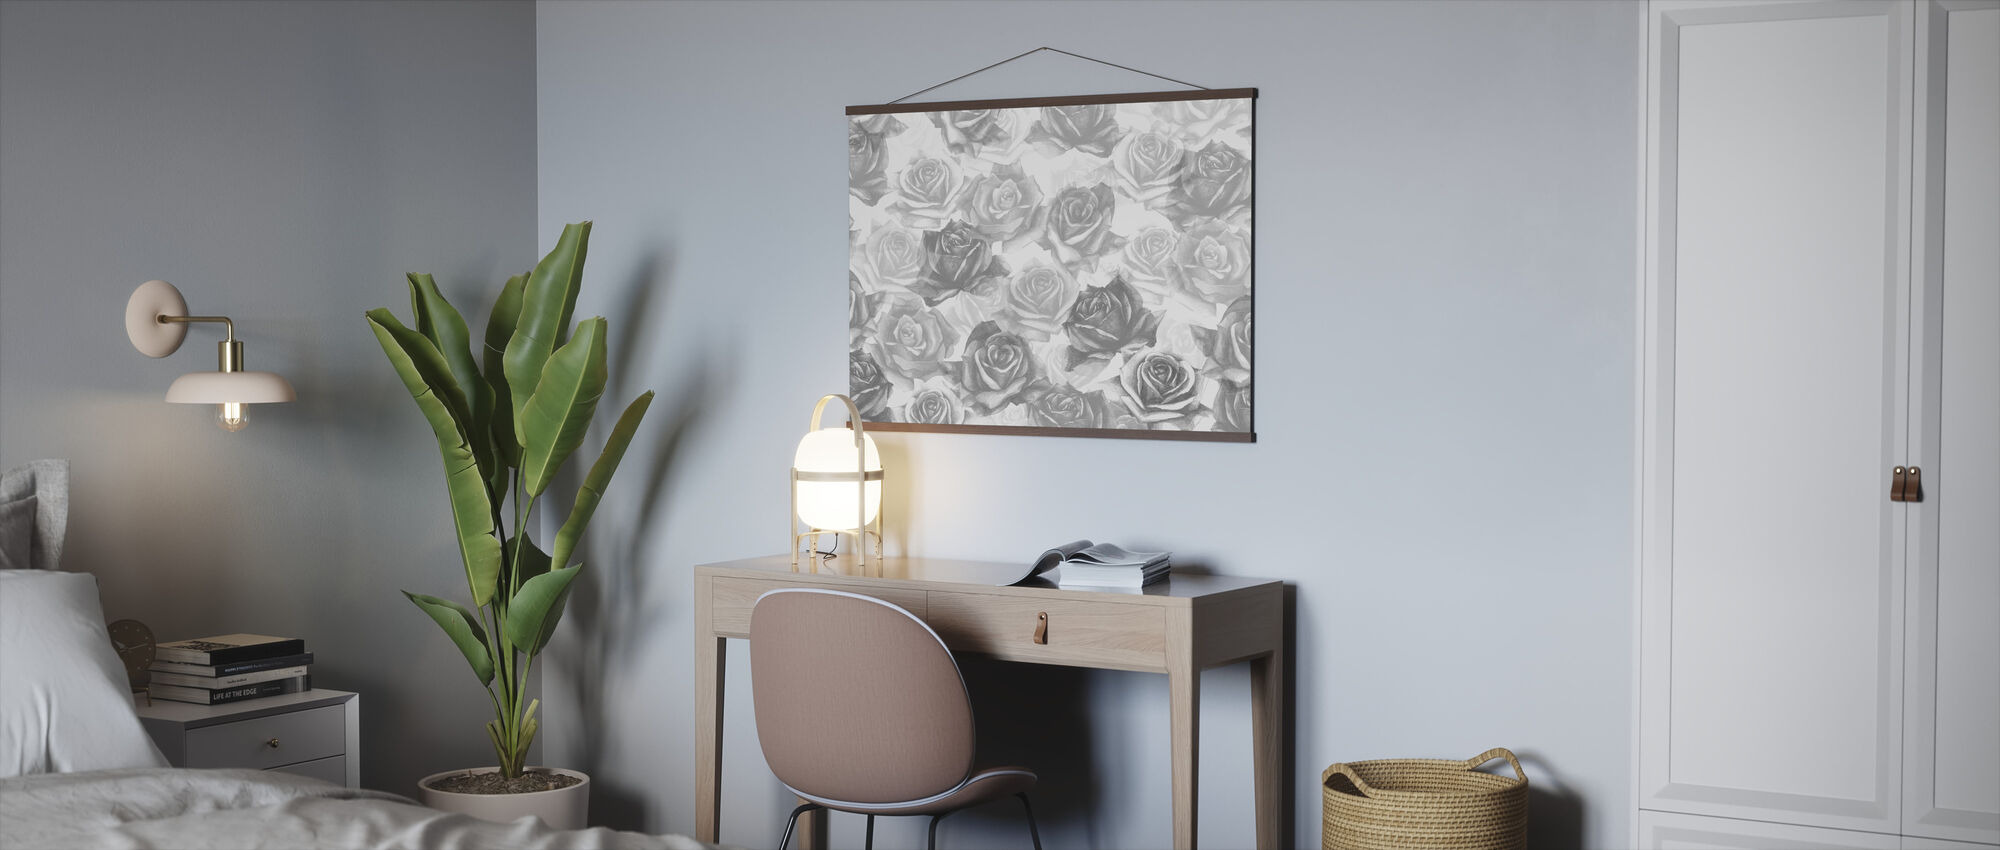 My Grey Roses - Poster - Office